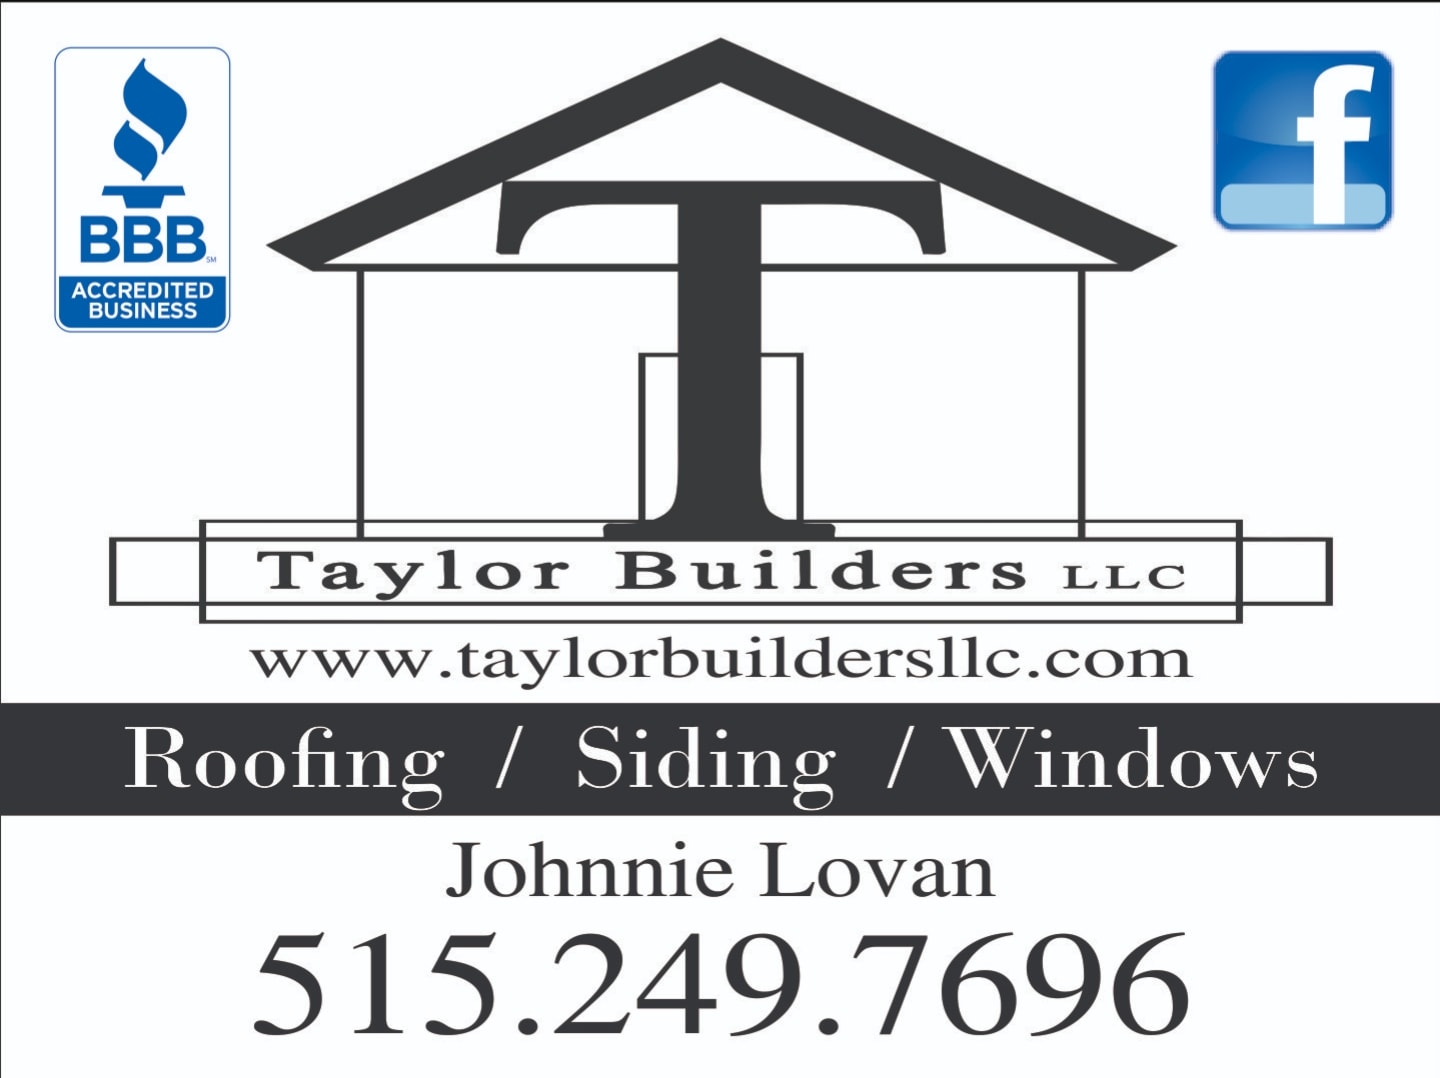 Taylor Builders Llc Company Summary